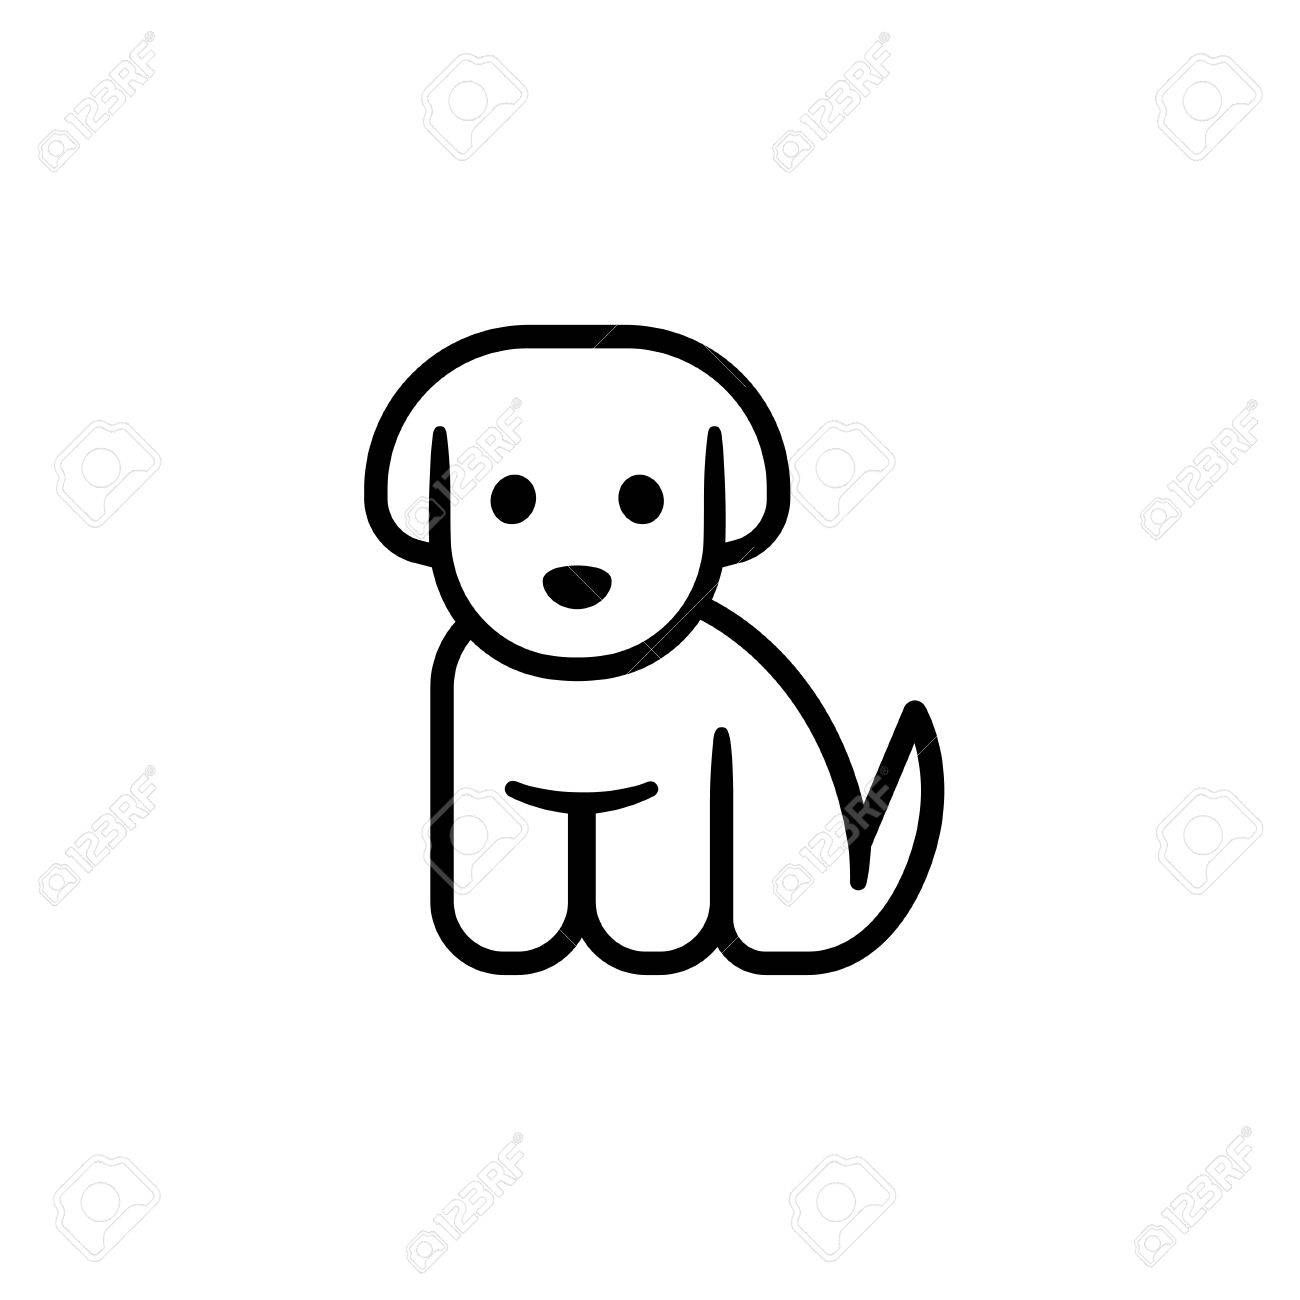 Little Puppy Icon Simple Cute Cartoon Dog Vector Illustration